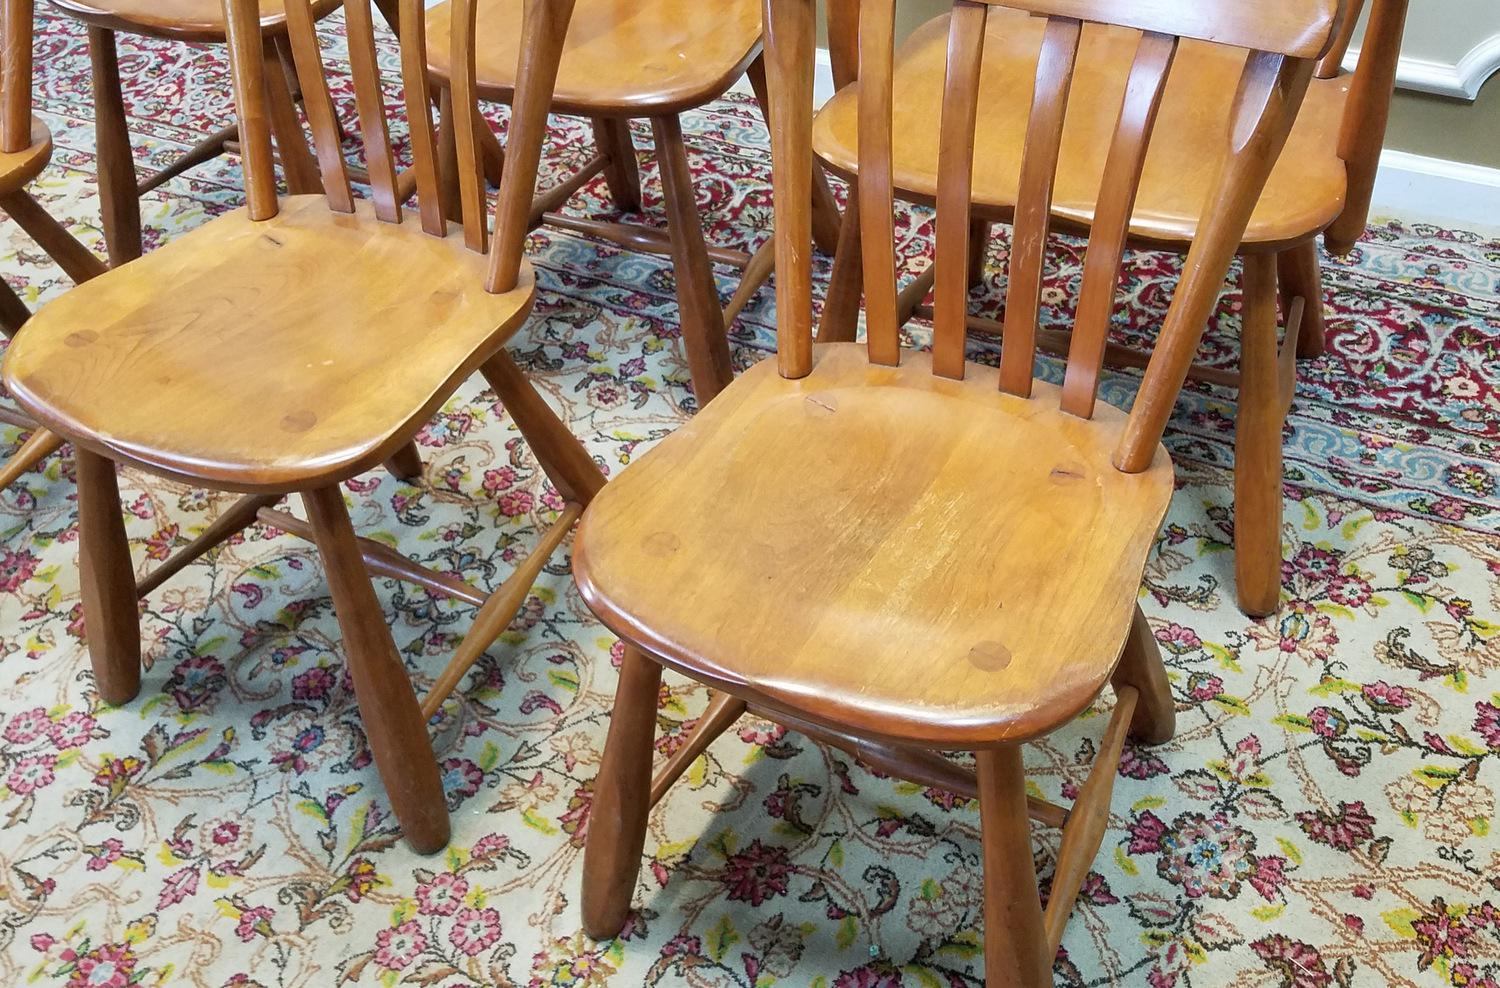 hickory dining room chairs ivory sherpa double hang a round chair 1950s vintage winchendon furniture solid rock maple old meeting house country ...